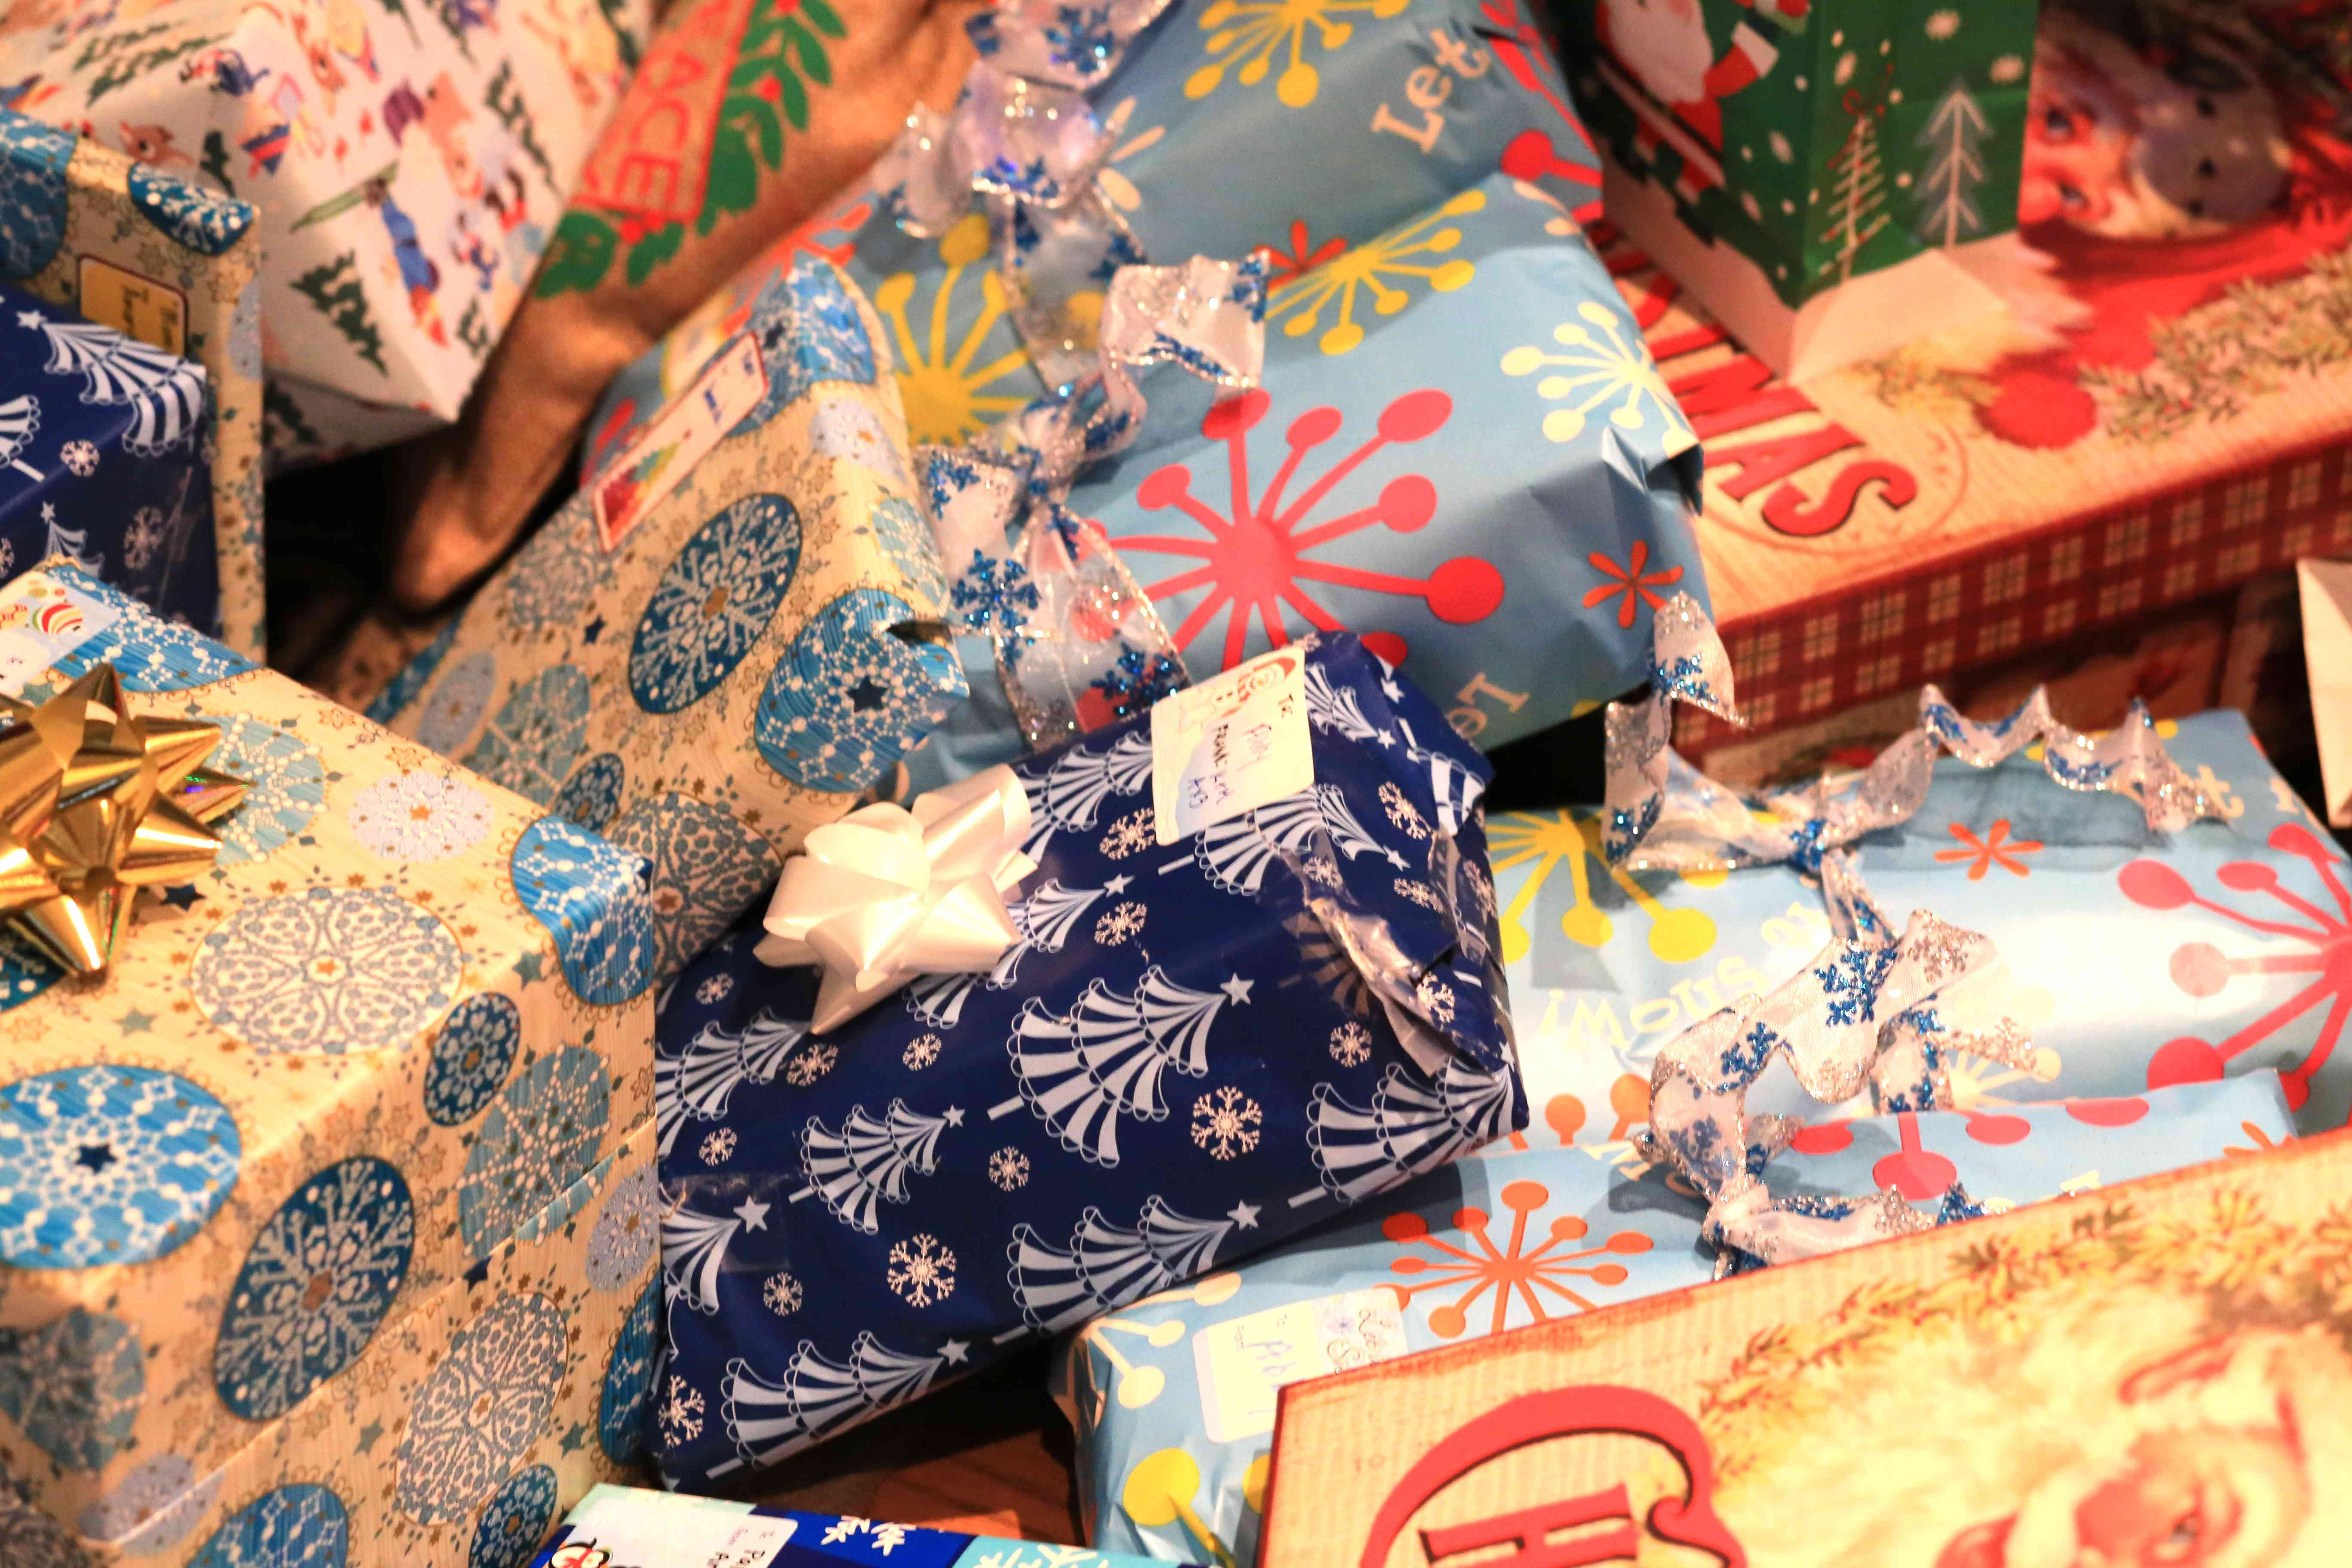 Wrapped gifts for Christmas Celebration